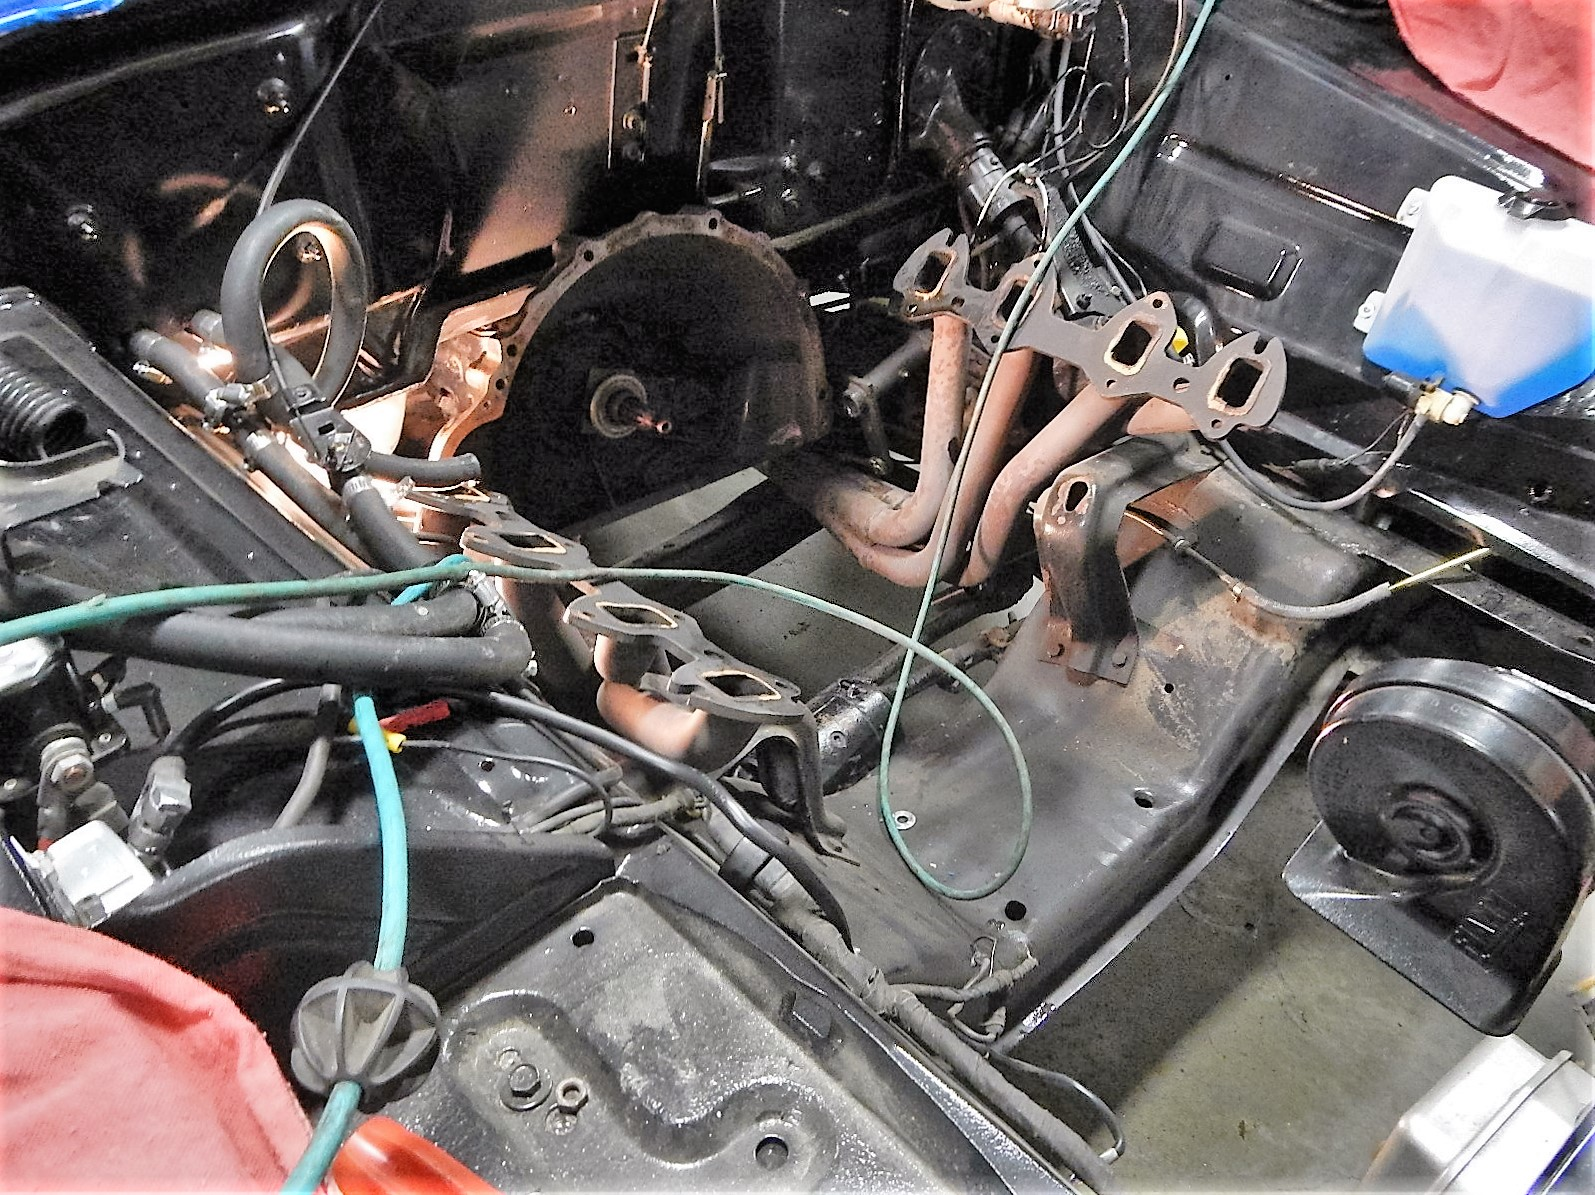 1968 Ford F-100 Front End Swap - Mercury Crown Vic  024.jpg